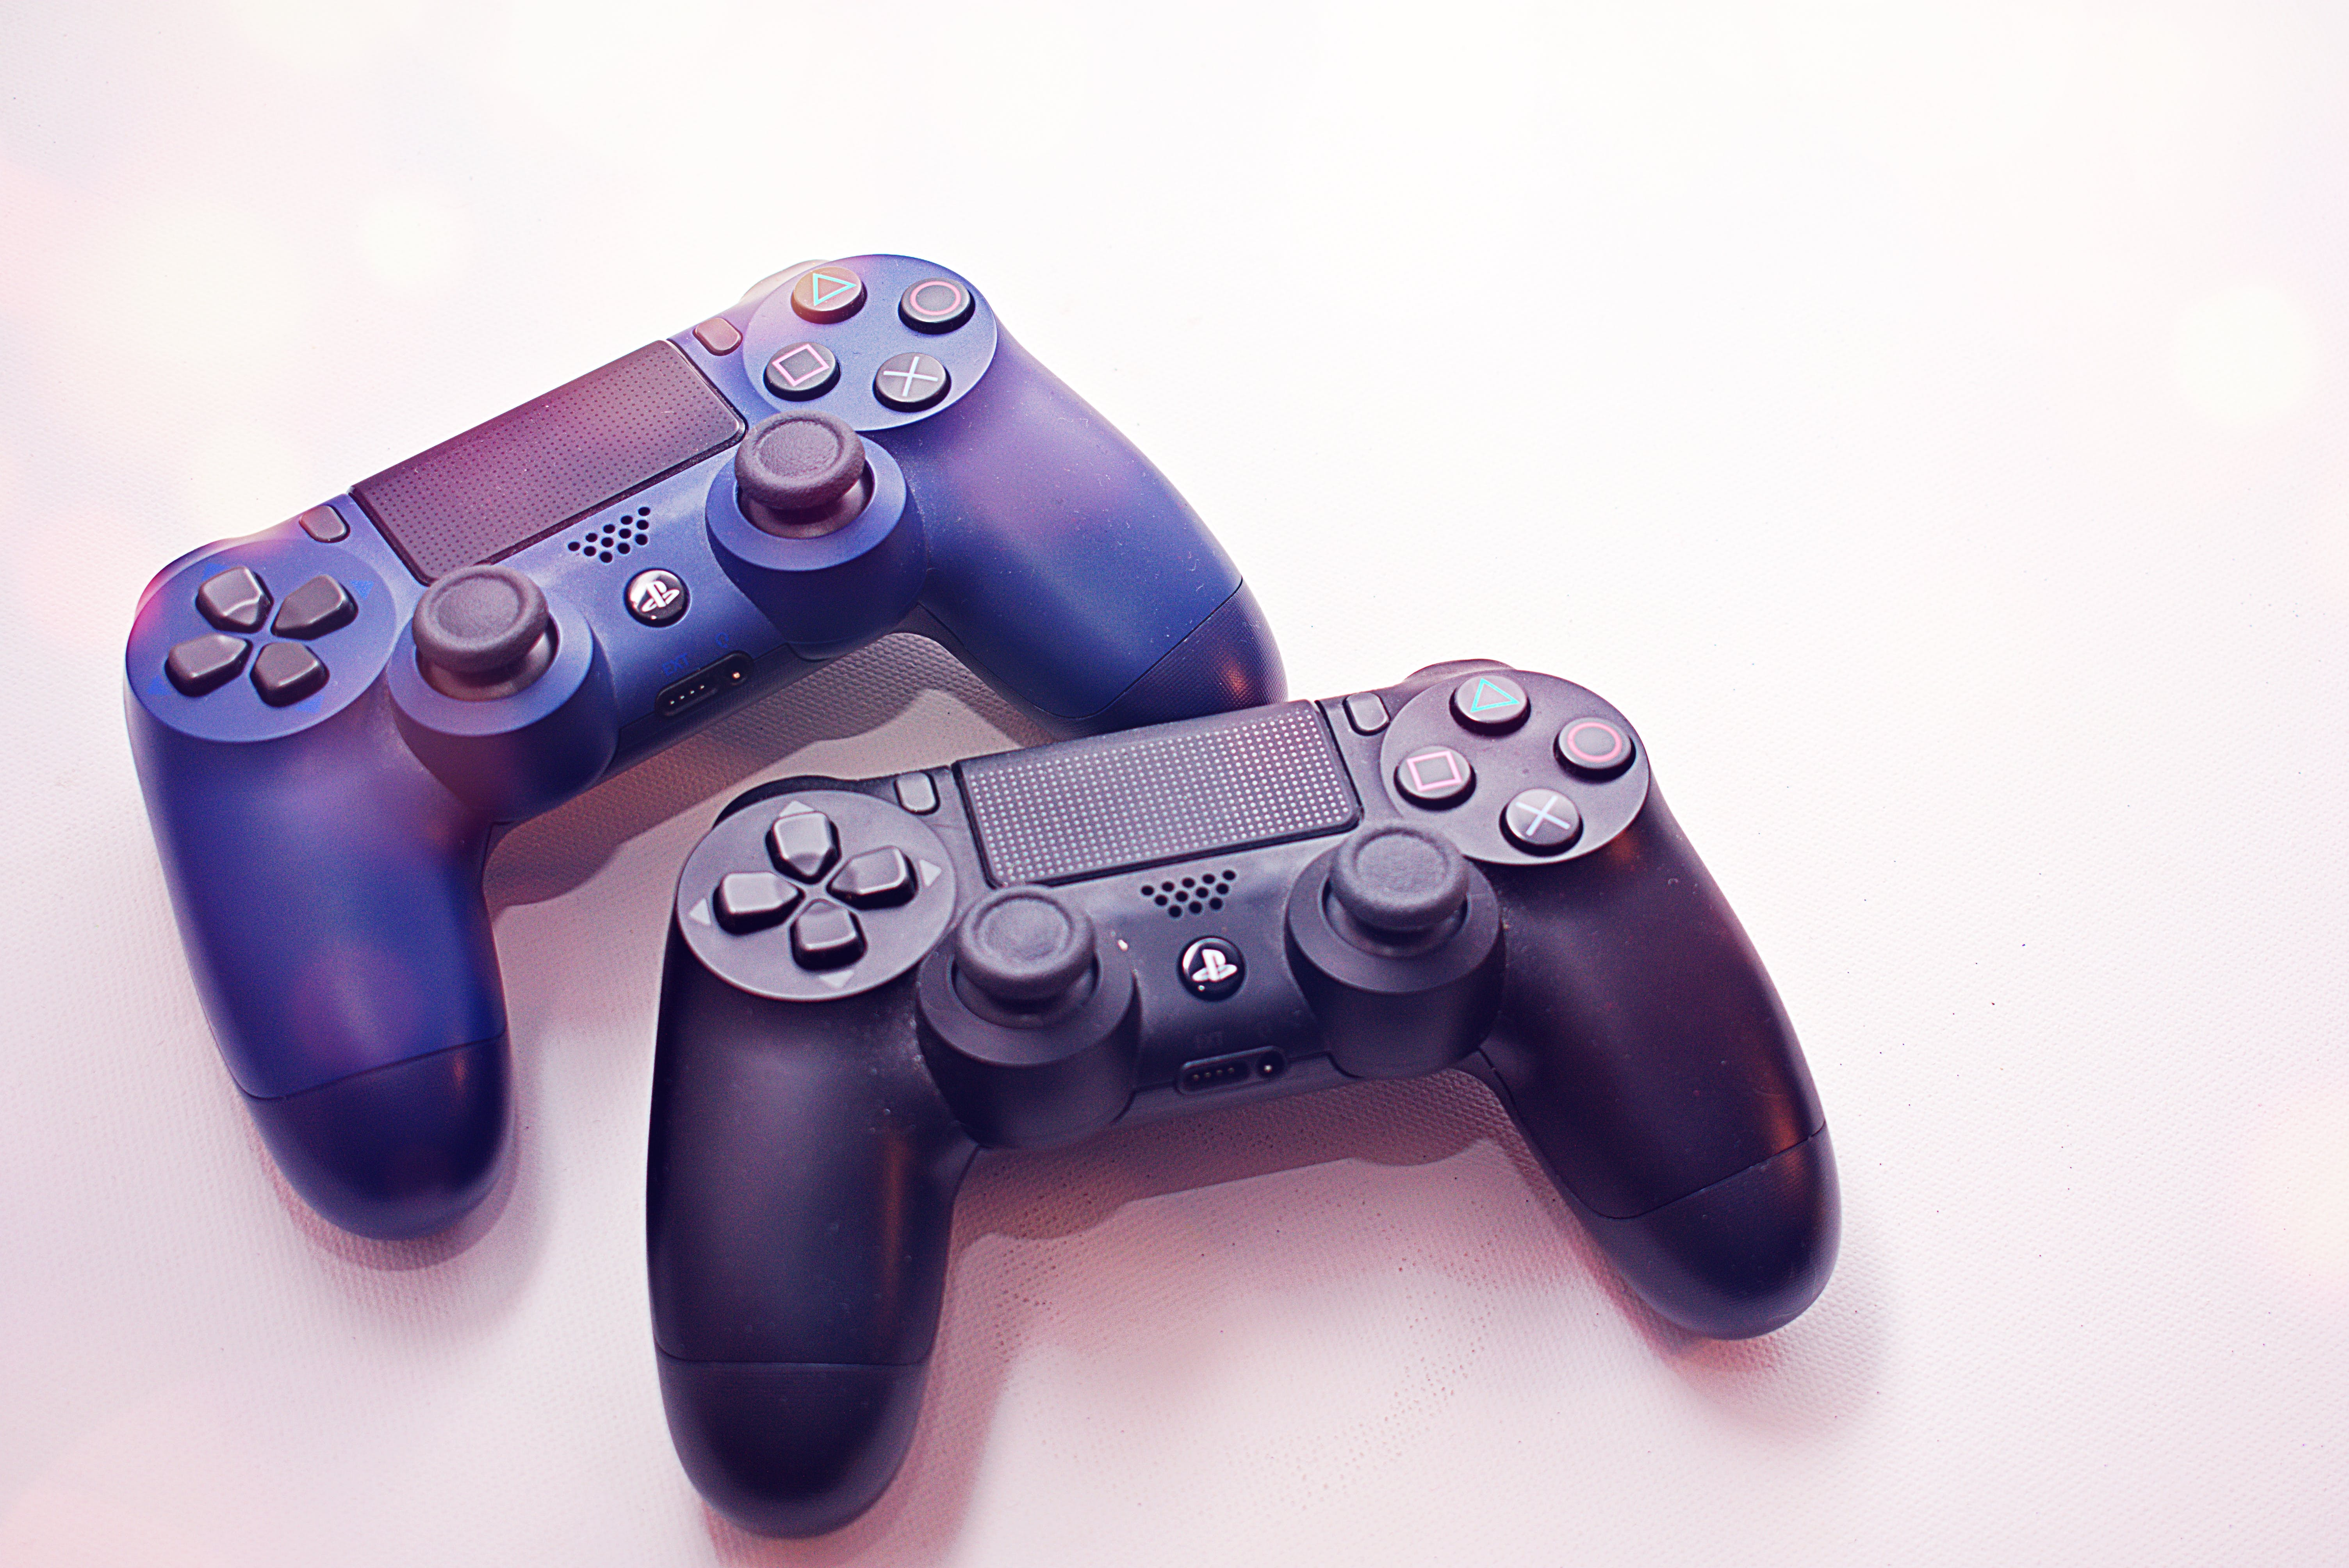 Sony Ps4 Wireless Controllers On White Surface